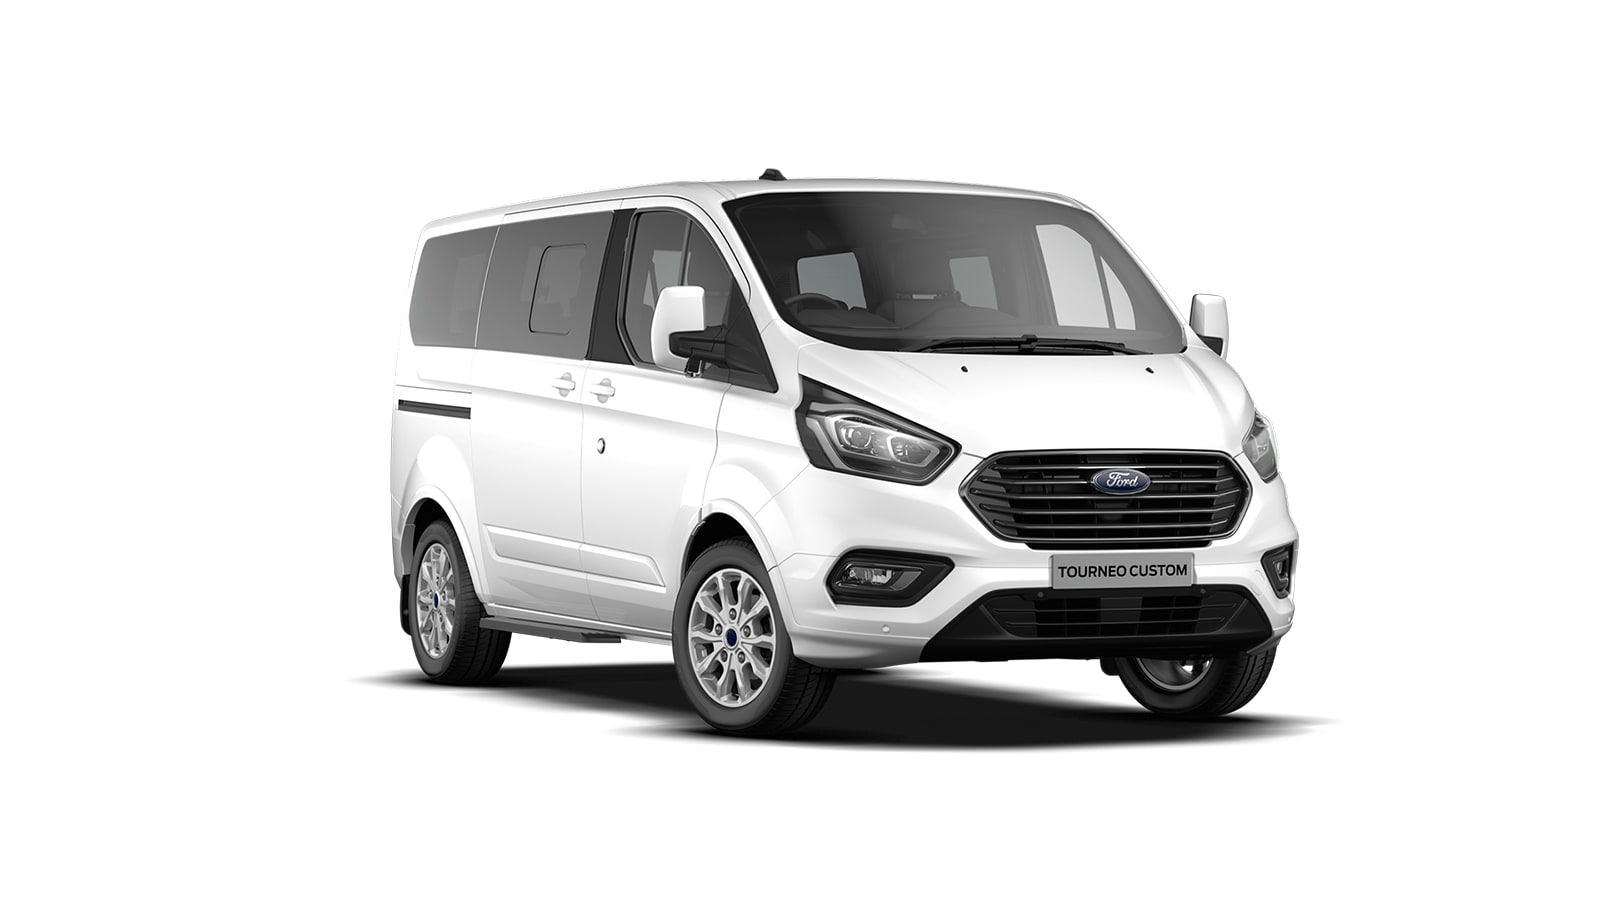 New Ford Tourneo Custom Plug-in Hybrid Titanium PHEV